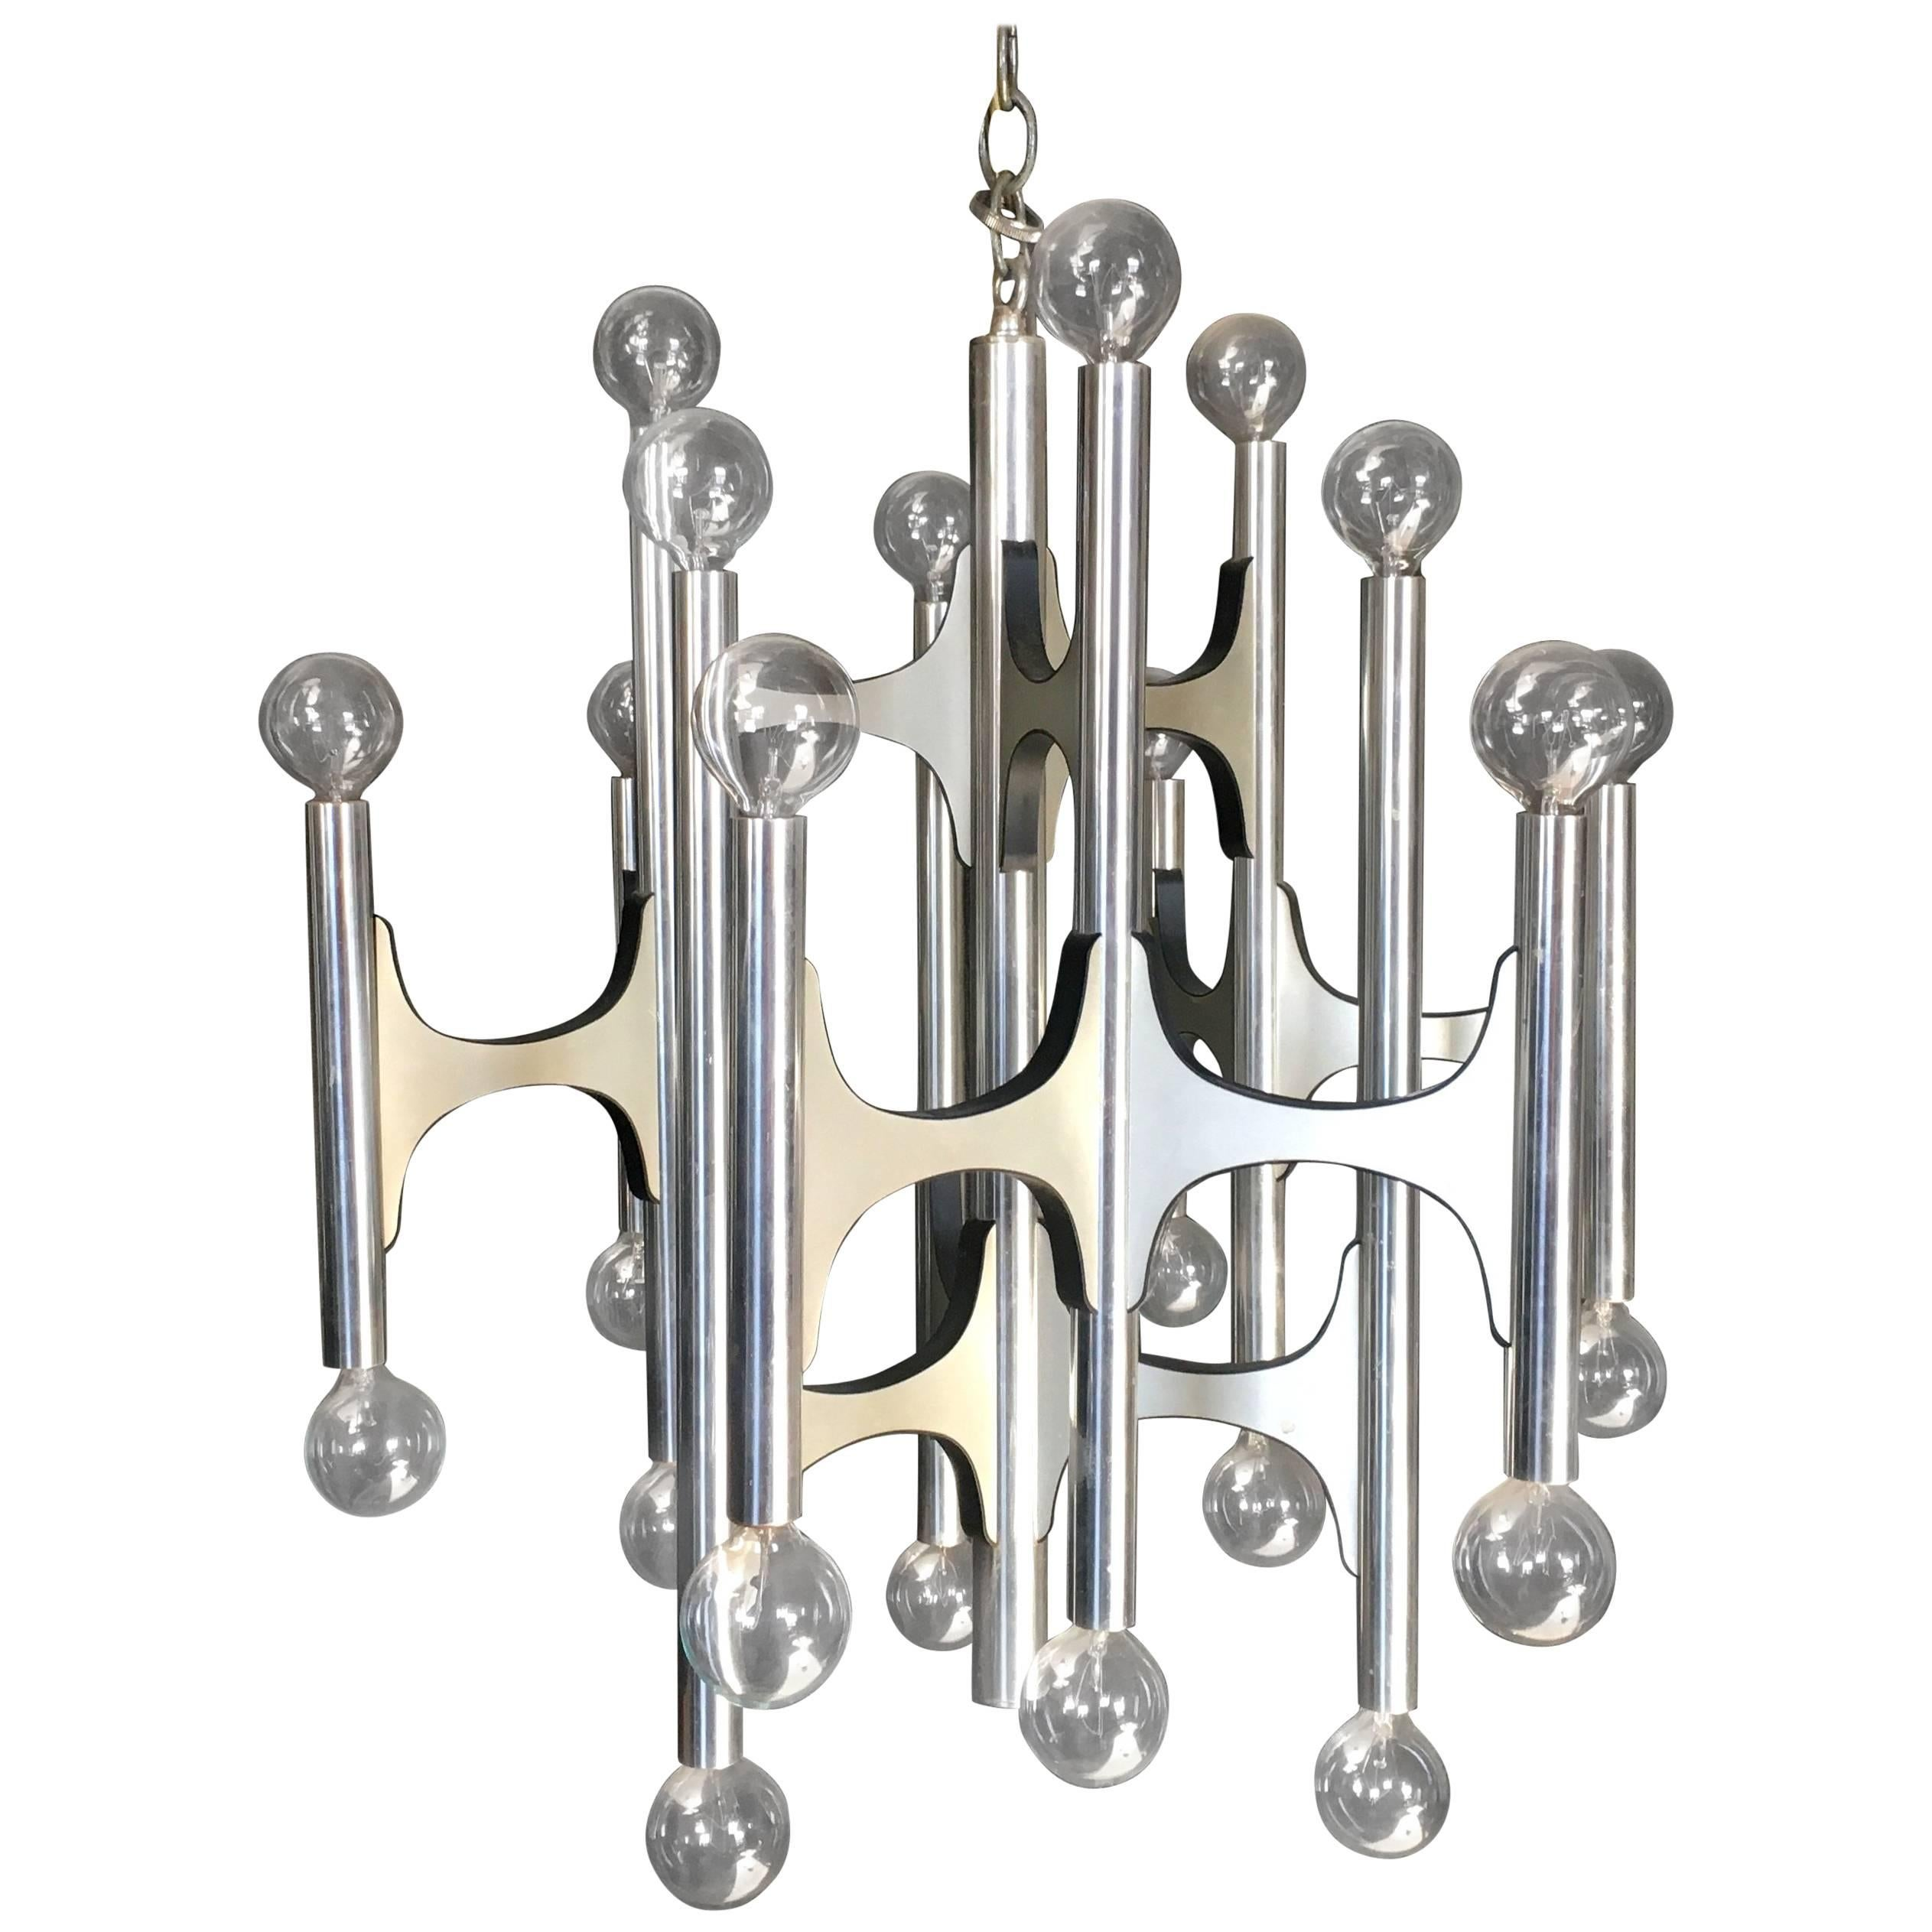 24 Bulb Gaetano Sciolari Chandelier For Lightolier